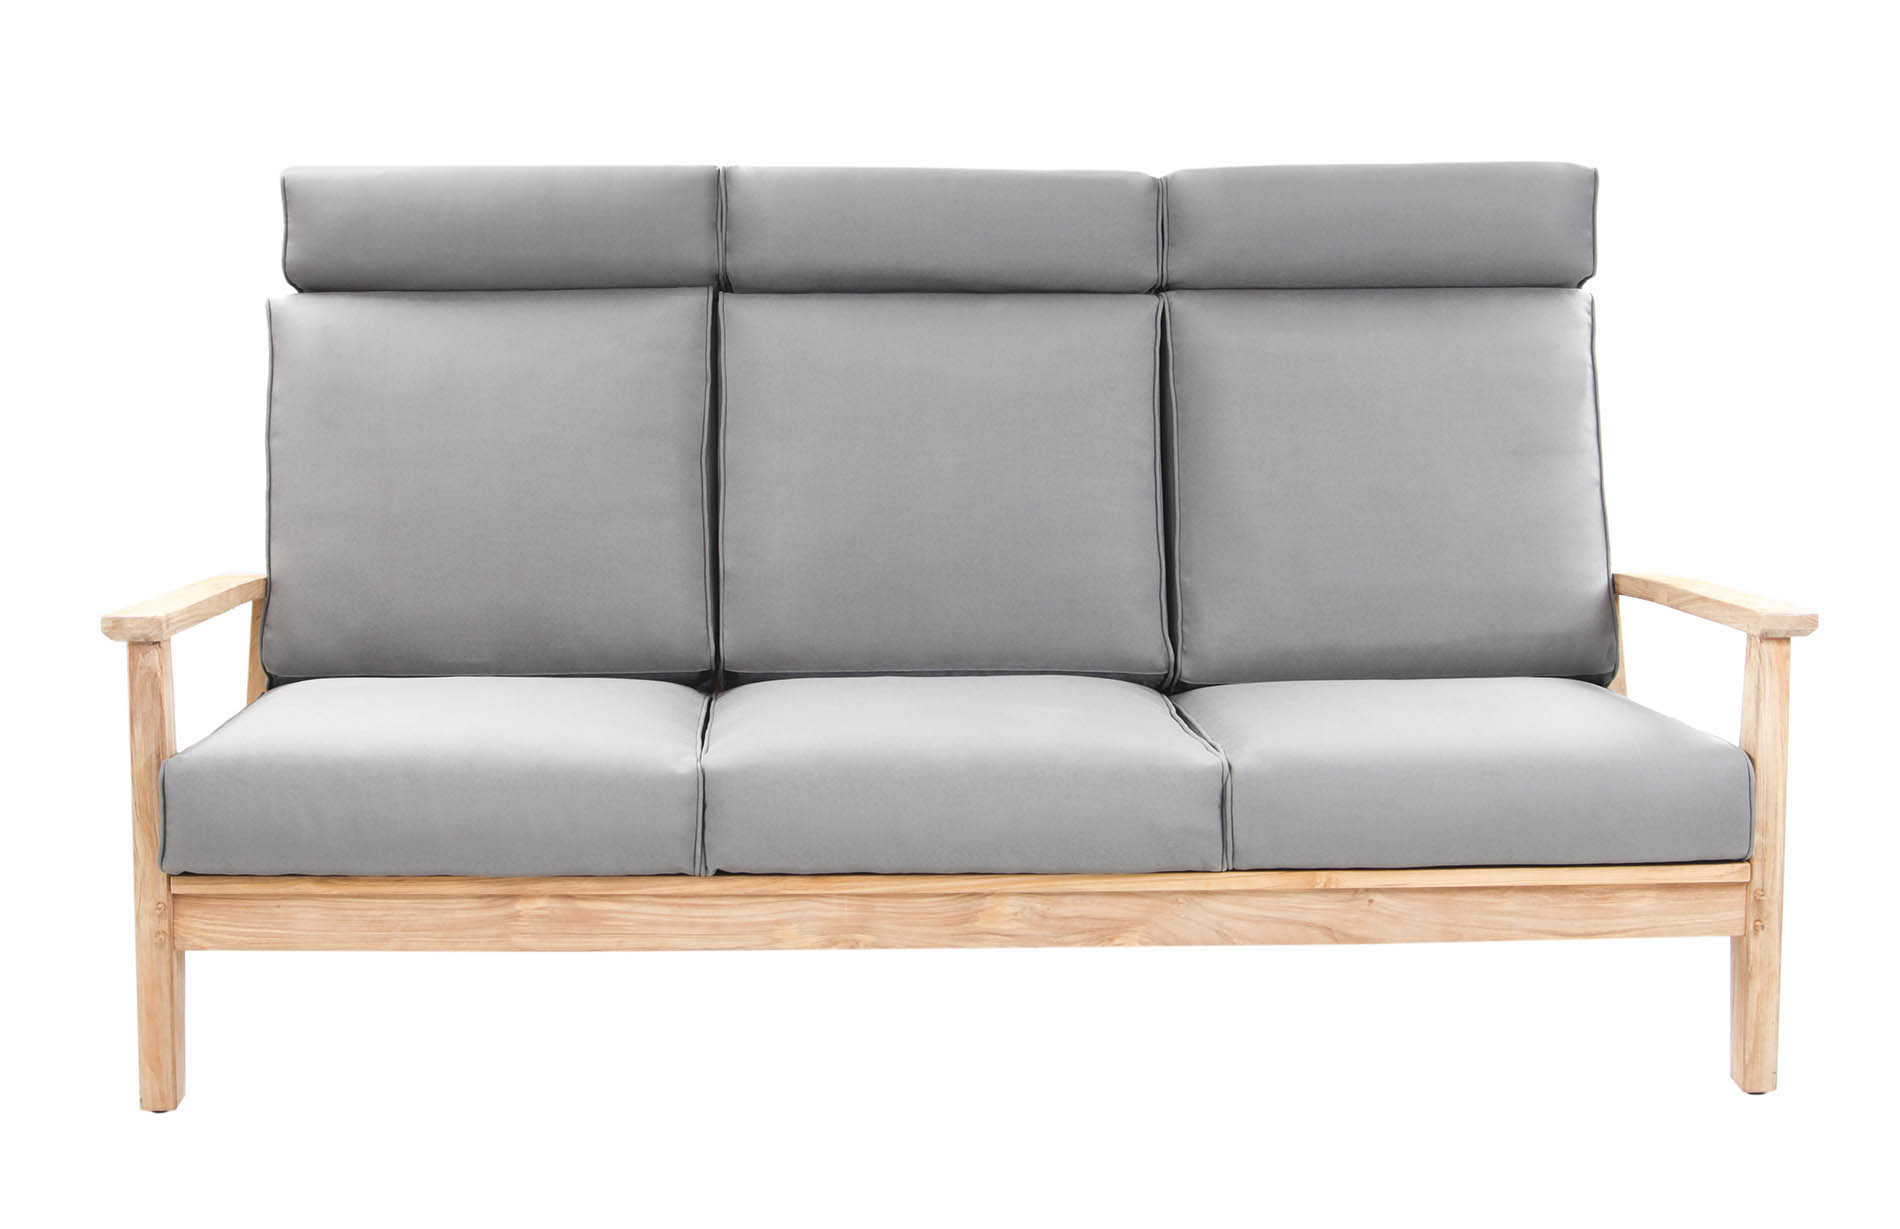 1 Front 3 seater sofa with headrest.jpg